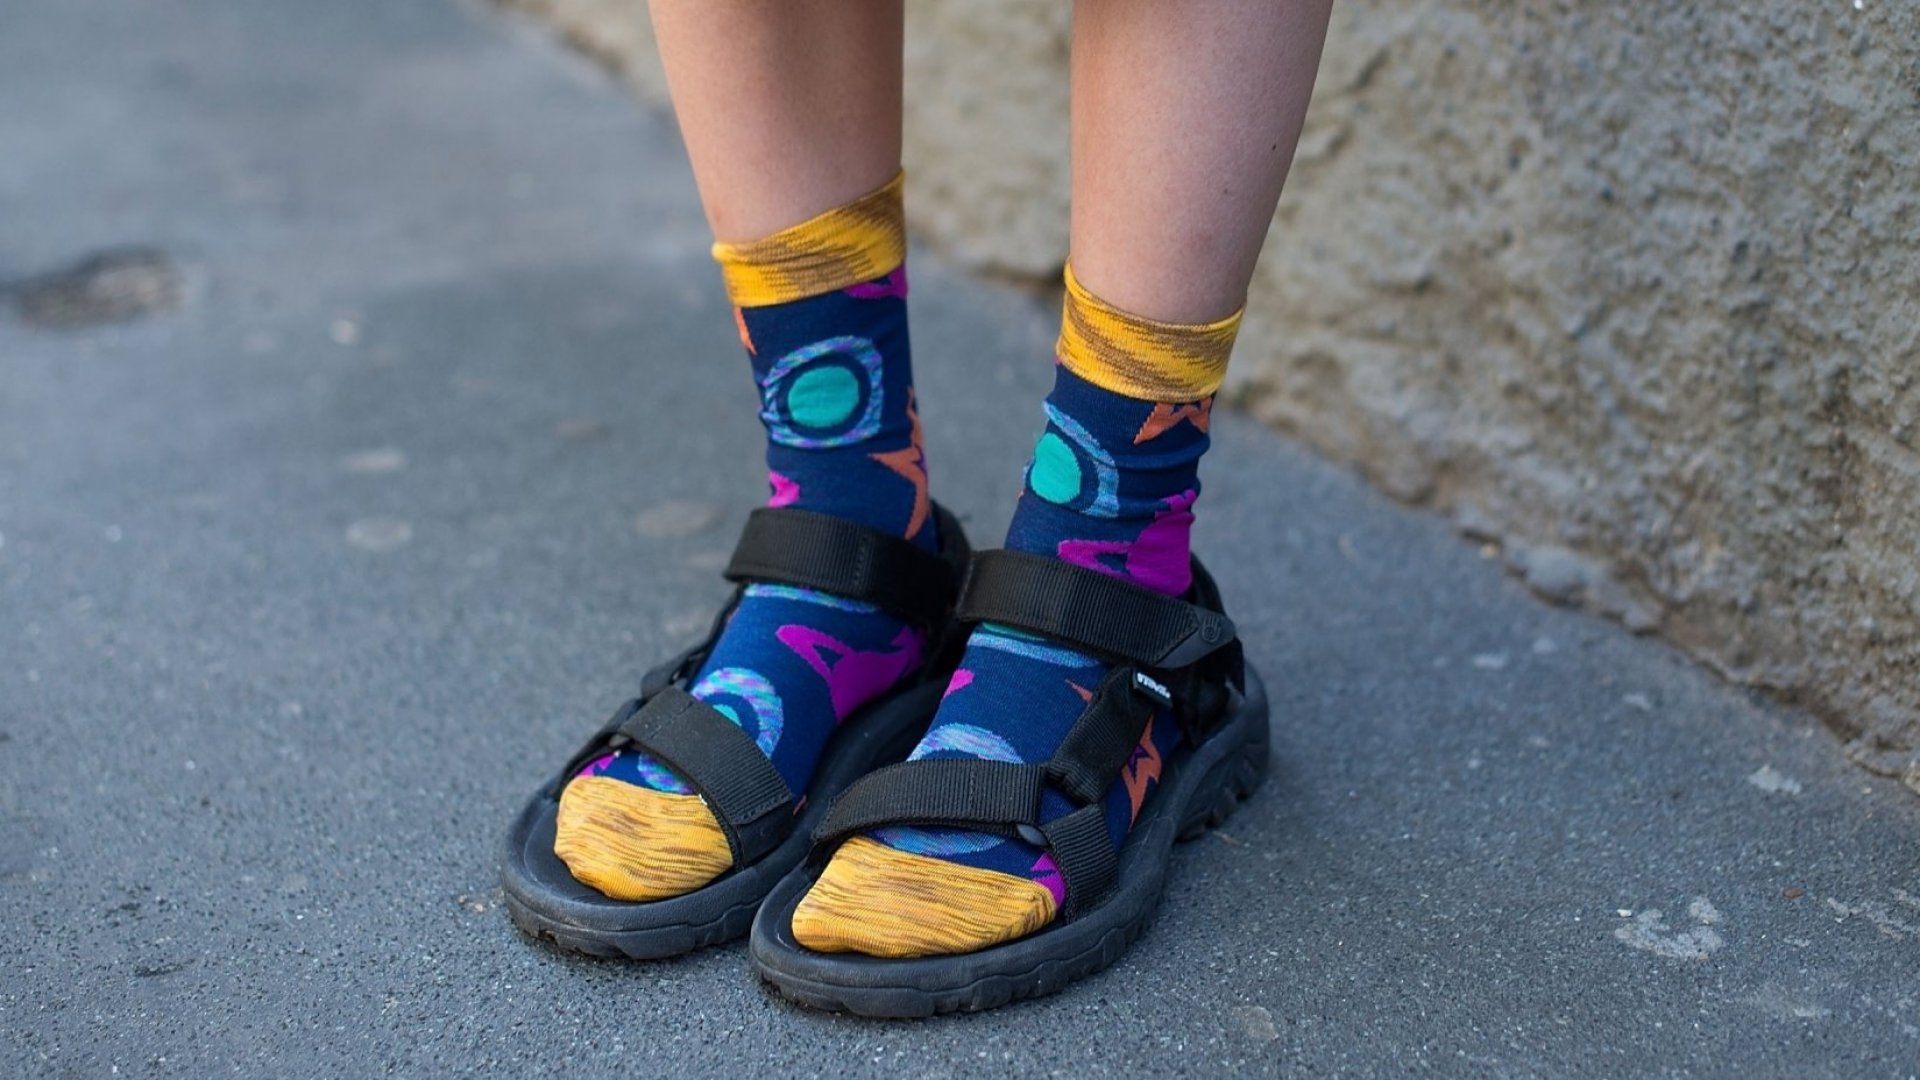 Utility Sandals Are Setting the Fashion World on Fire and Why You Should Care